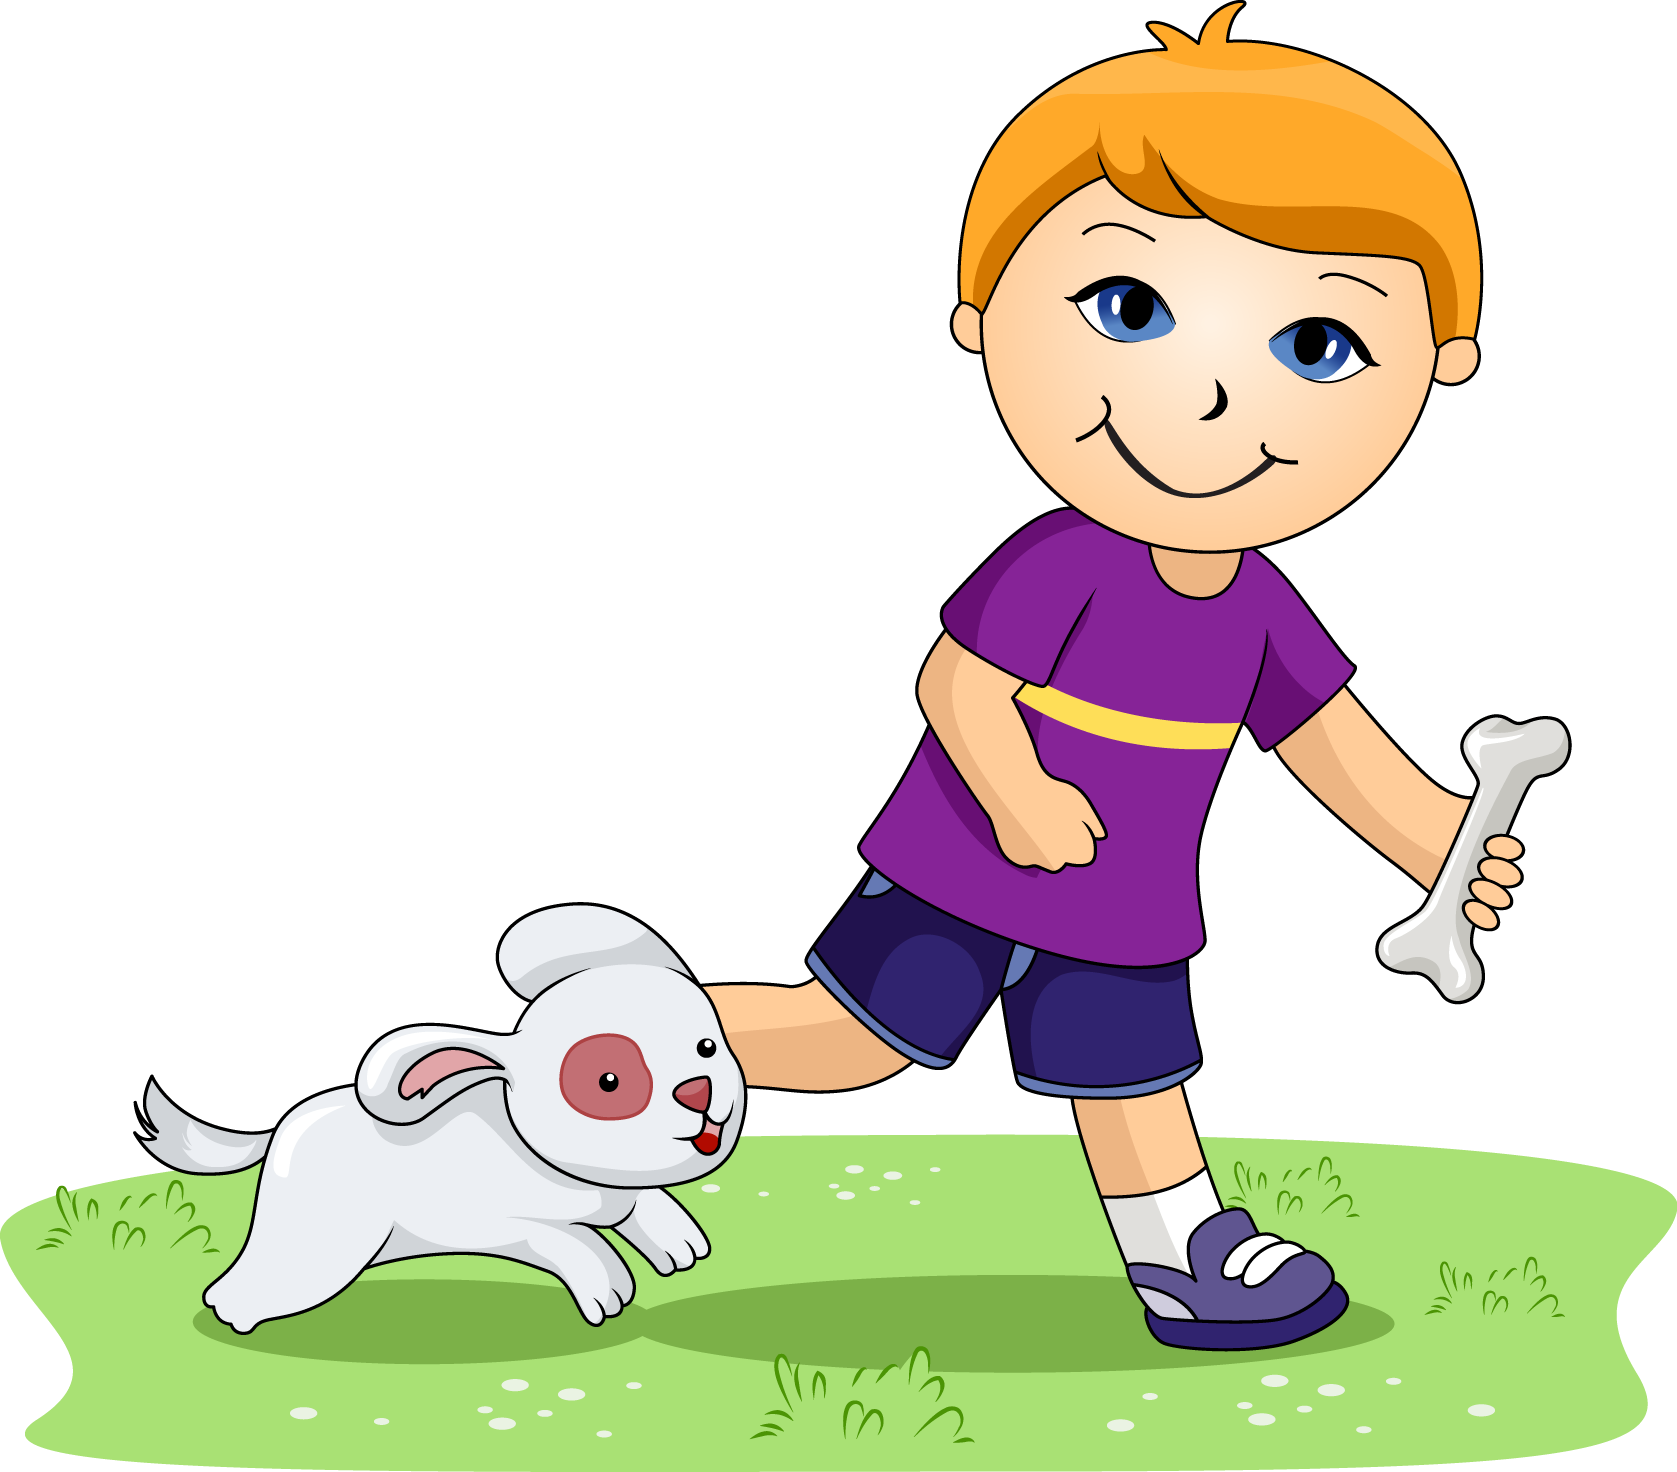 Two boys running with dog on leash clipart png royalty free library Free Pictures Of Dogs Running, Download Free Clip Art, Free ... png royalty free library